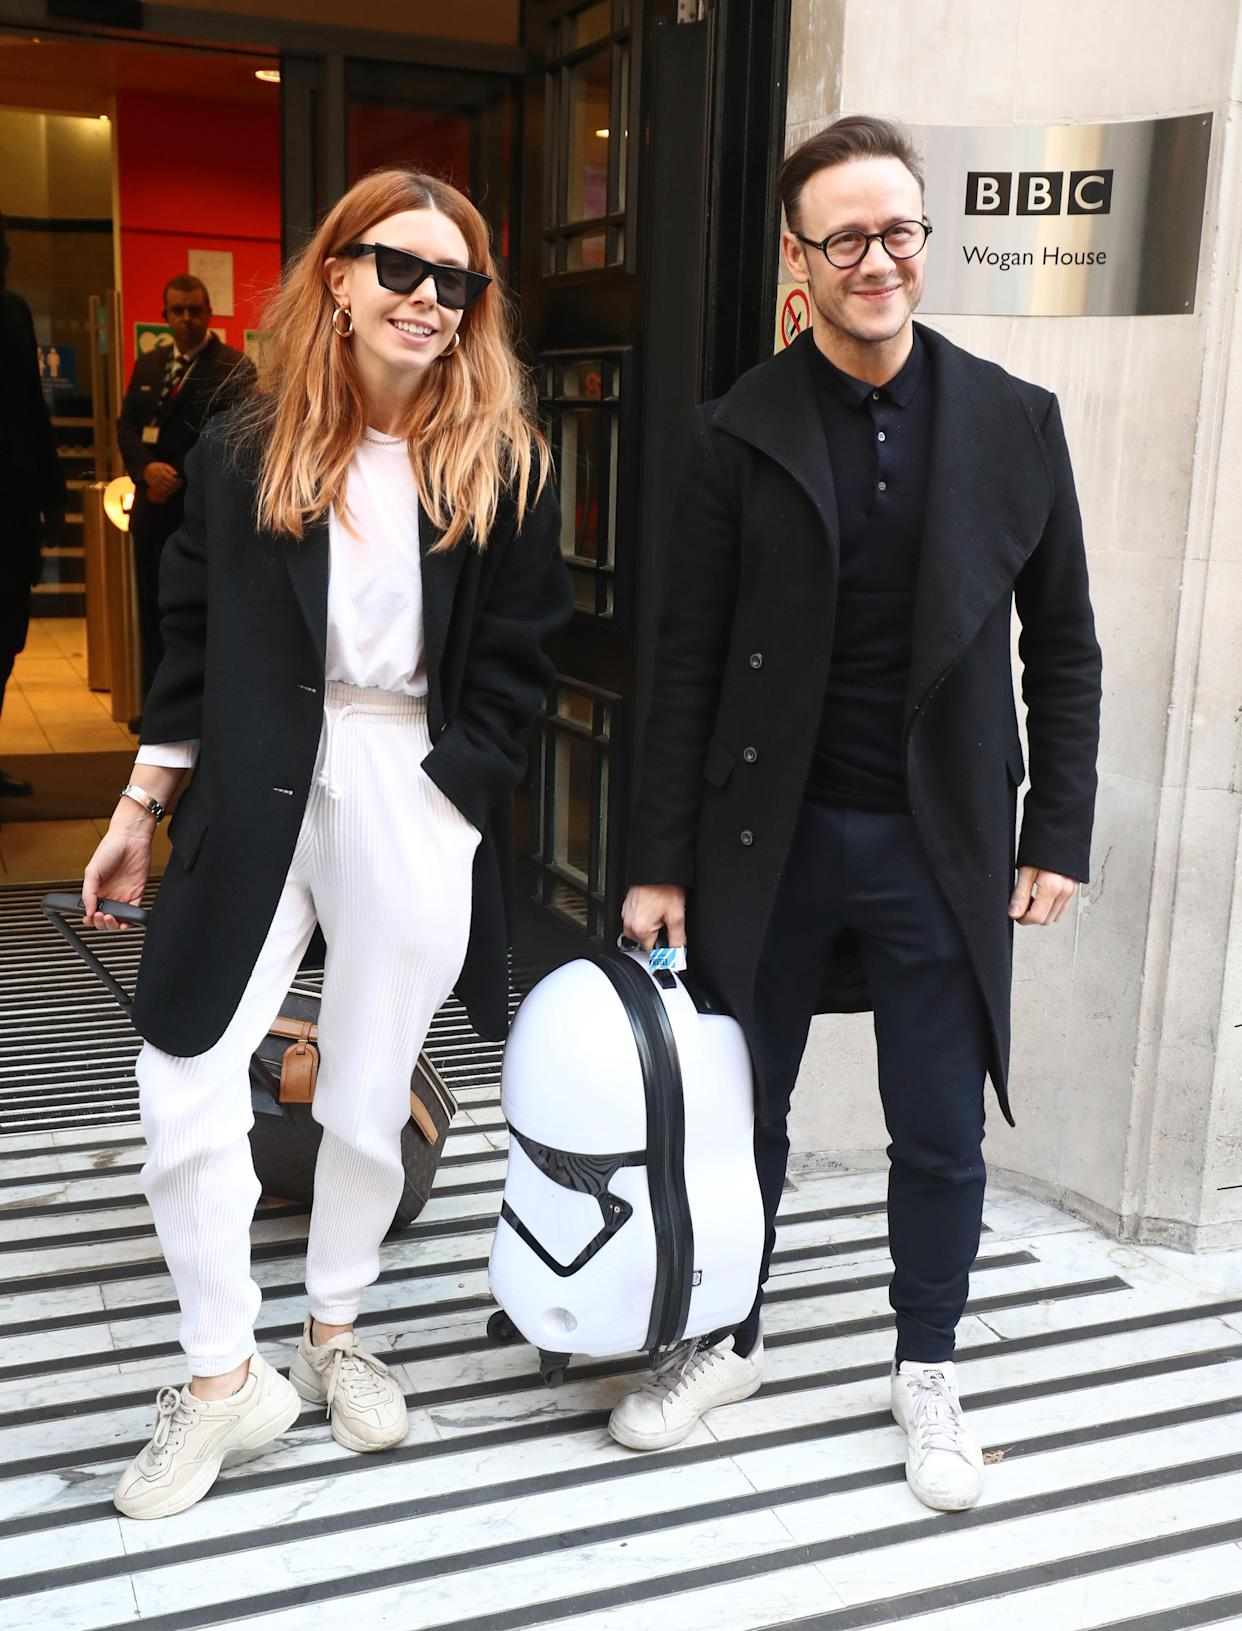 Kevin Clifton is currently dating Stacey Dooley. (Photo by Gareth Fuller/PA Images via Getty Images)